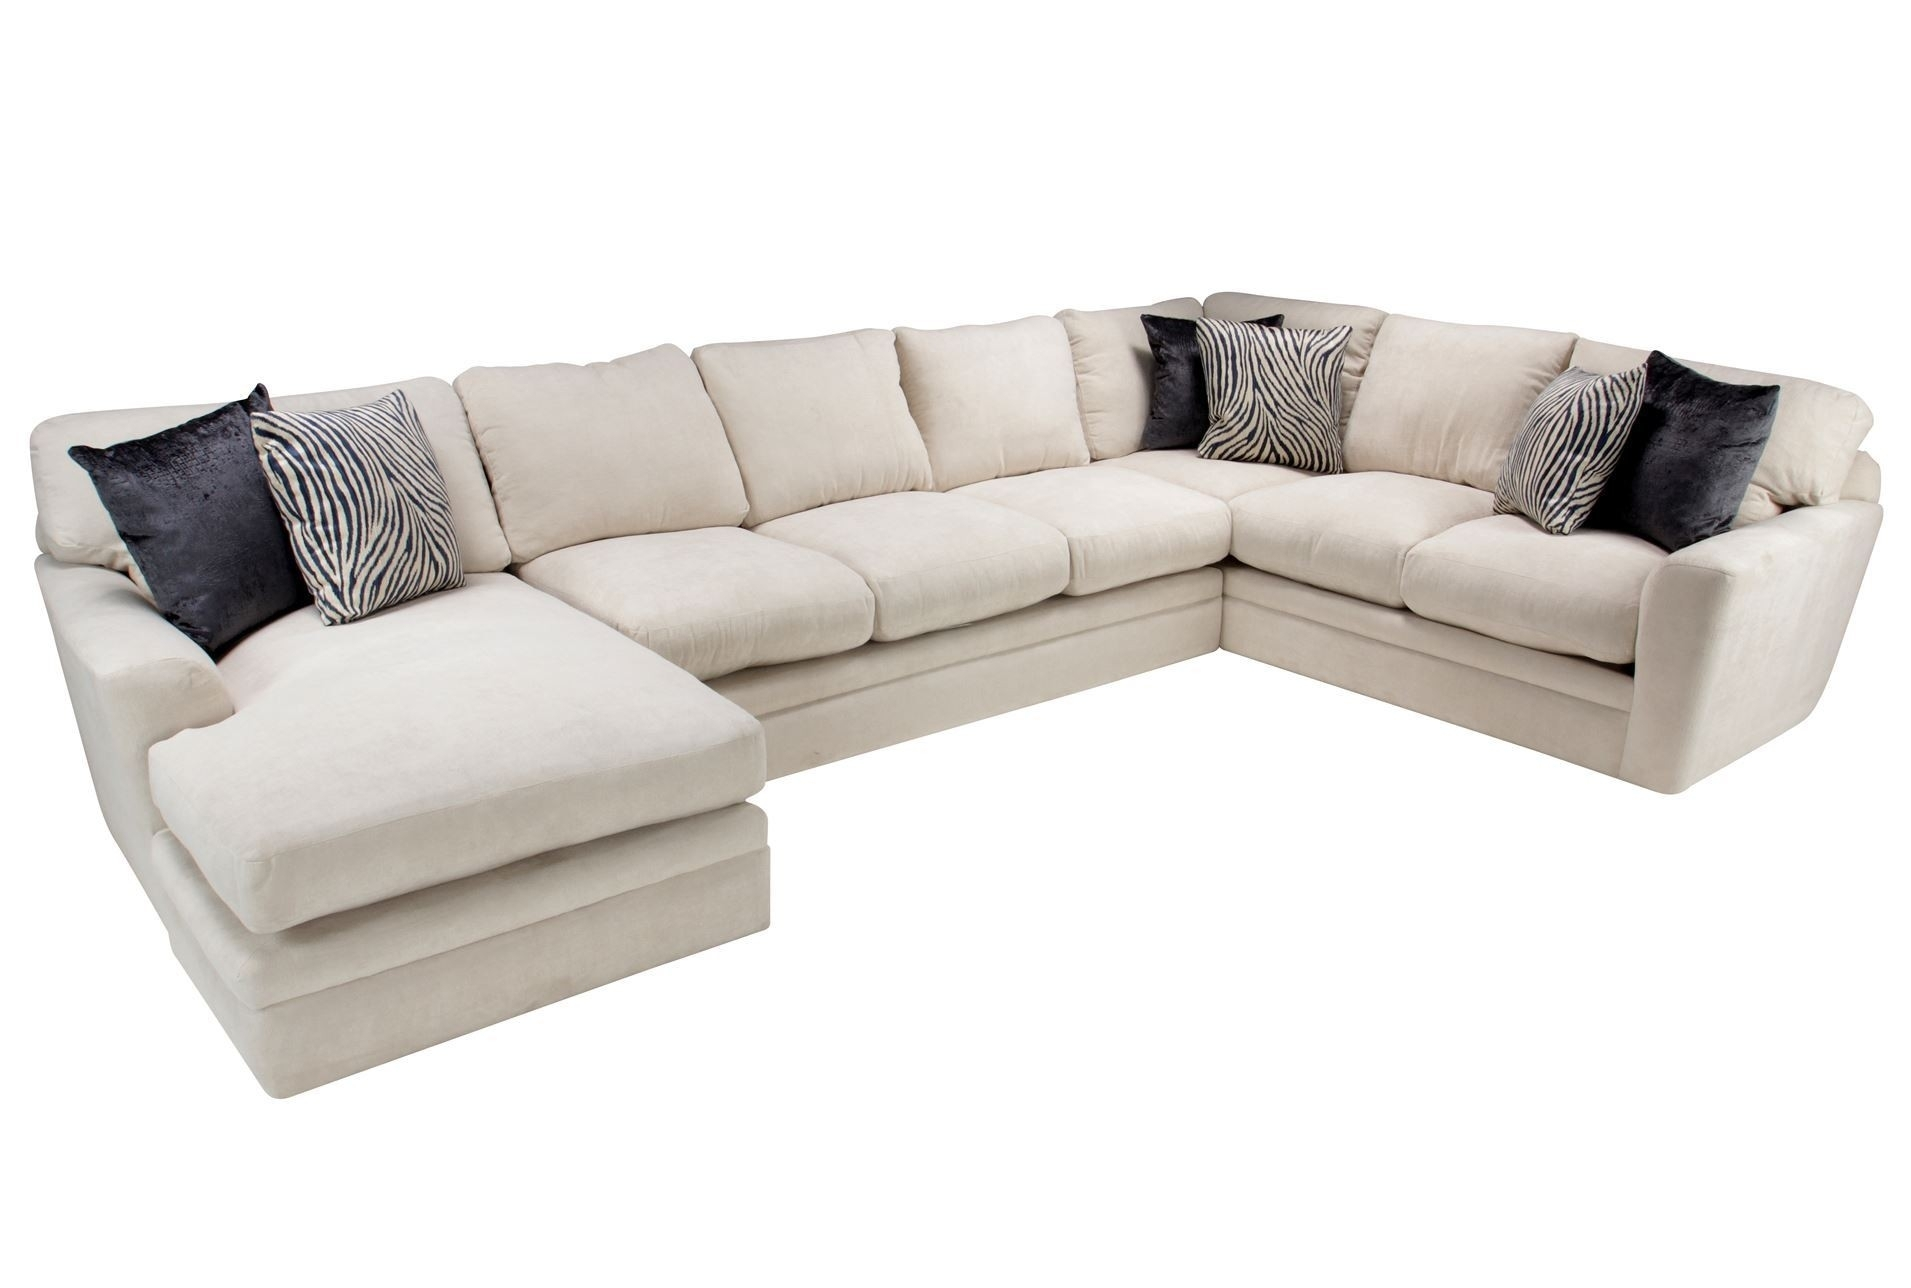 Living Spaces Sectional Couches Josephine 2 Piece W Raf Sofa 222882 inside Josephine 2 Piece Sectionals With Raf Sofa (Image 16 of 30)